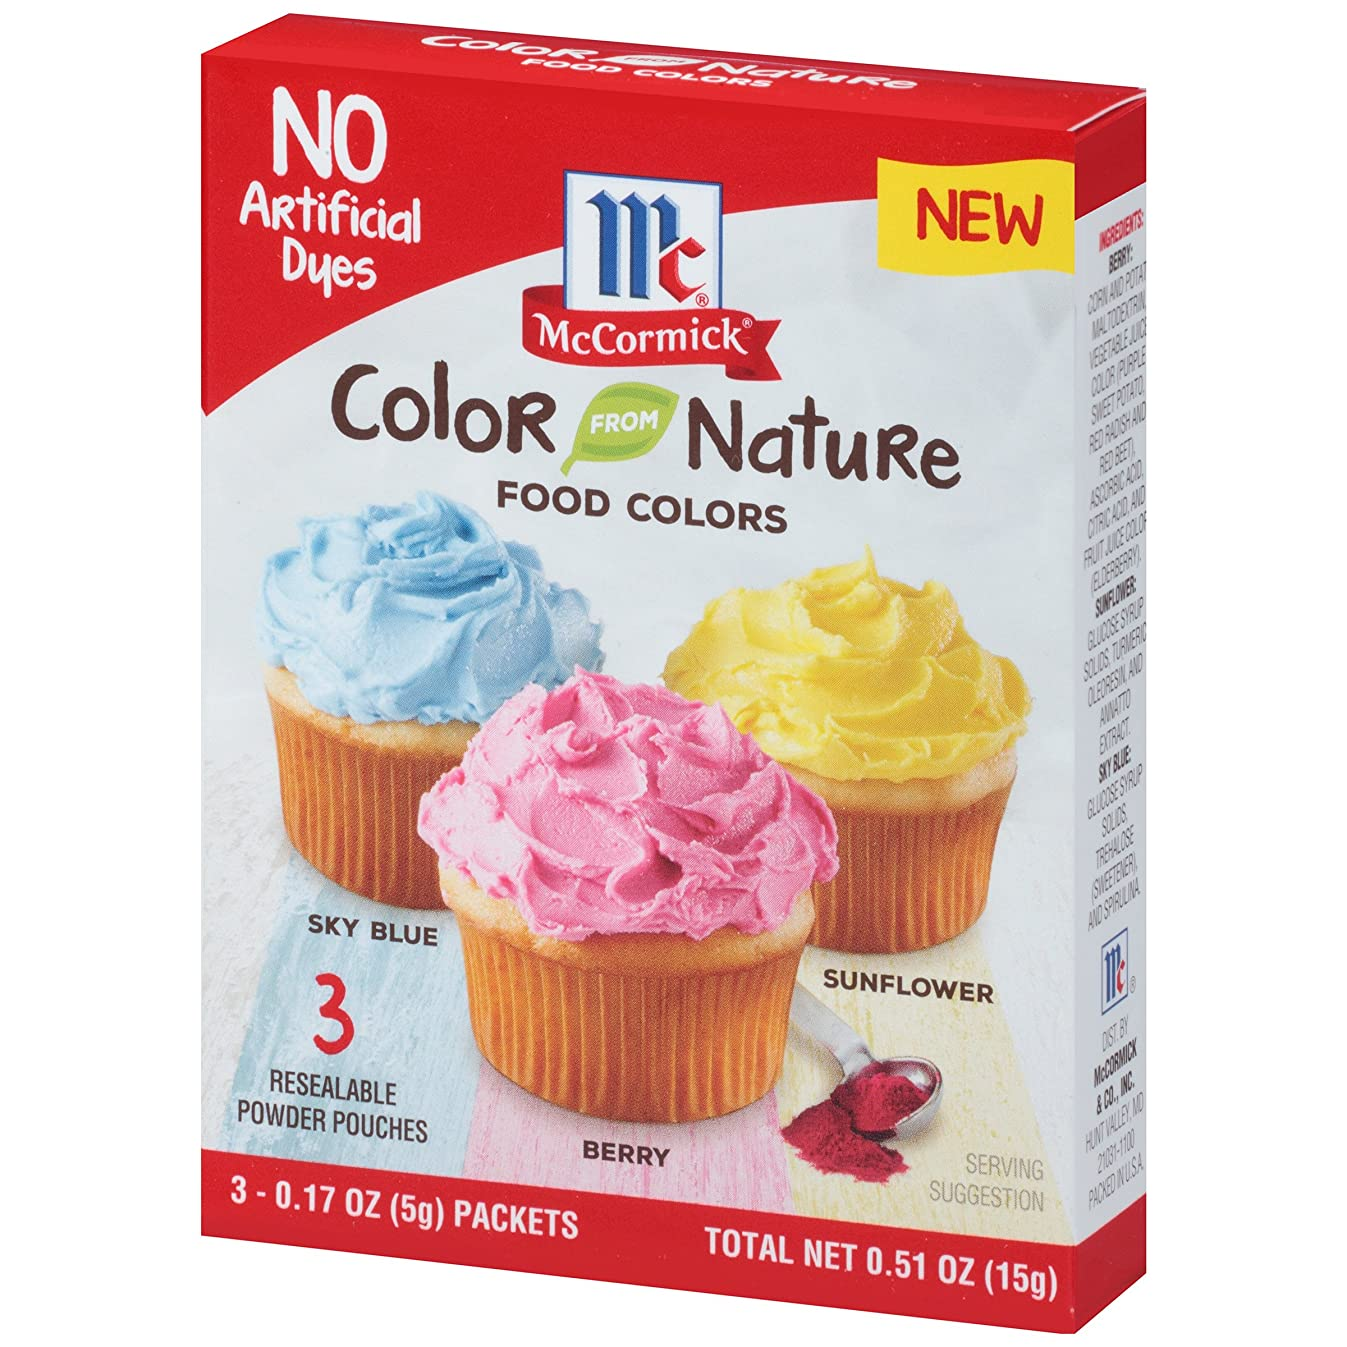 McCormick Color From Nature, 0.51 oz